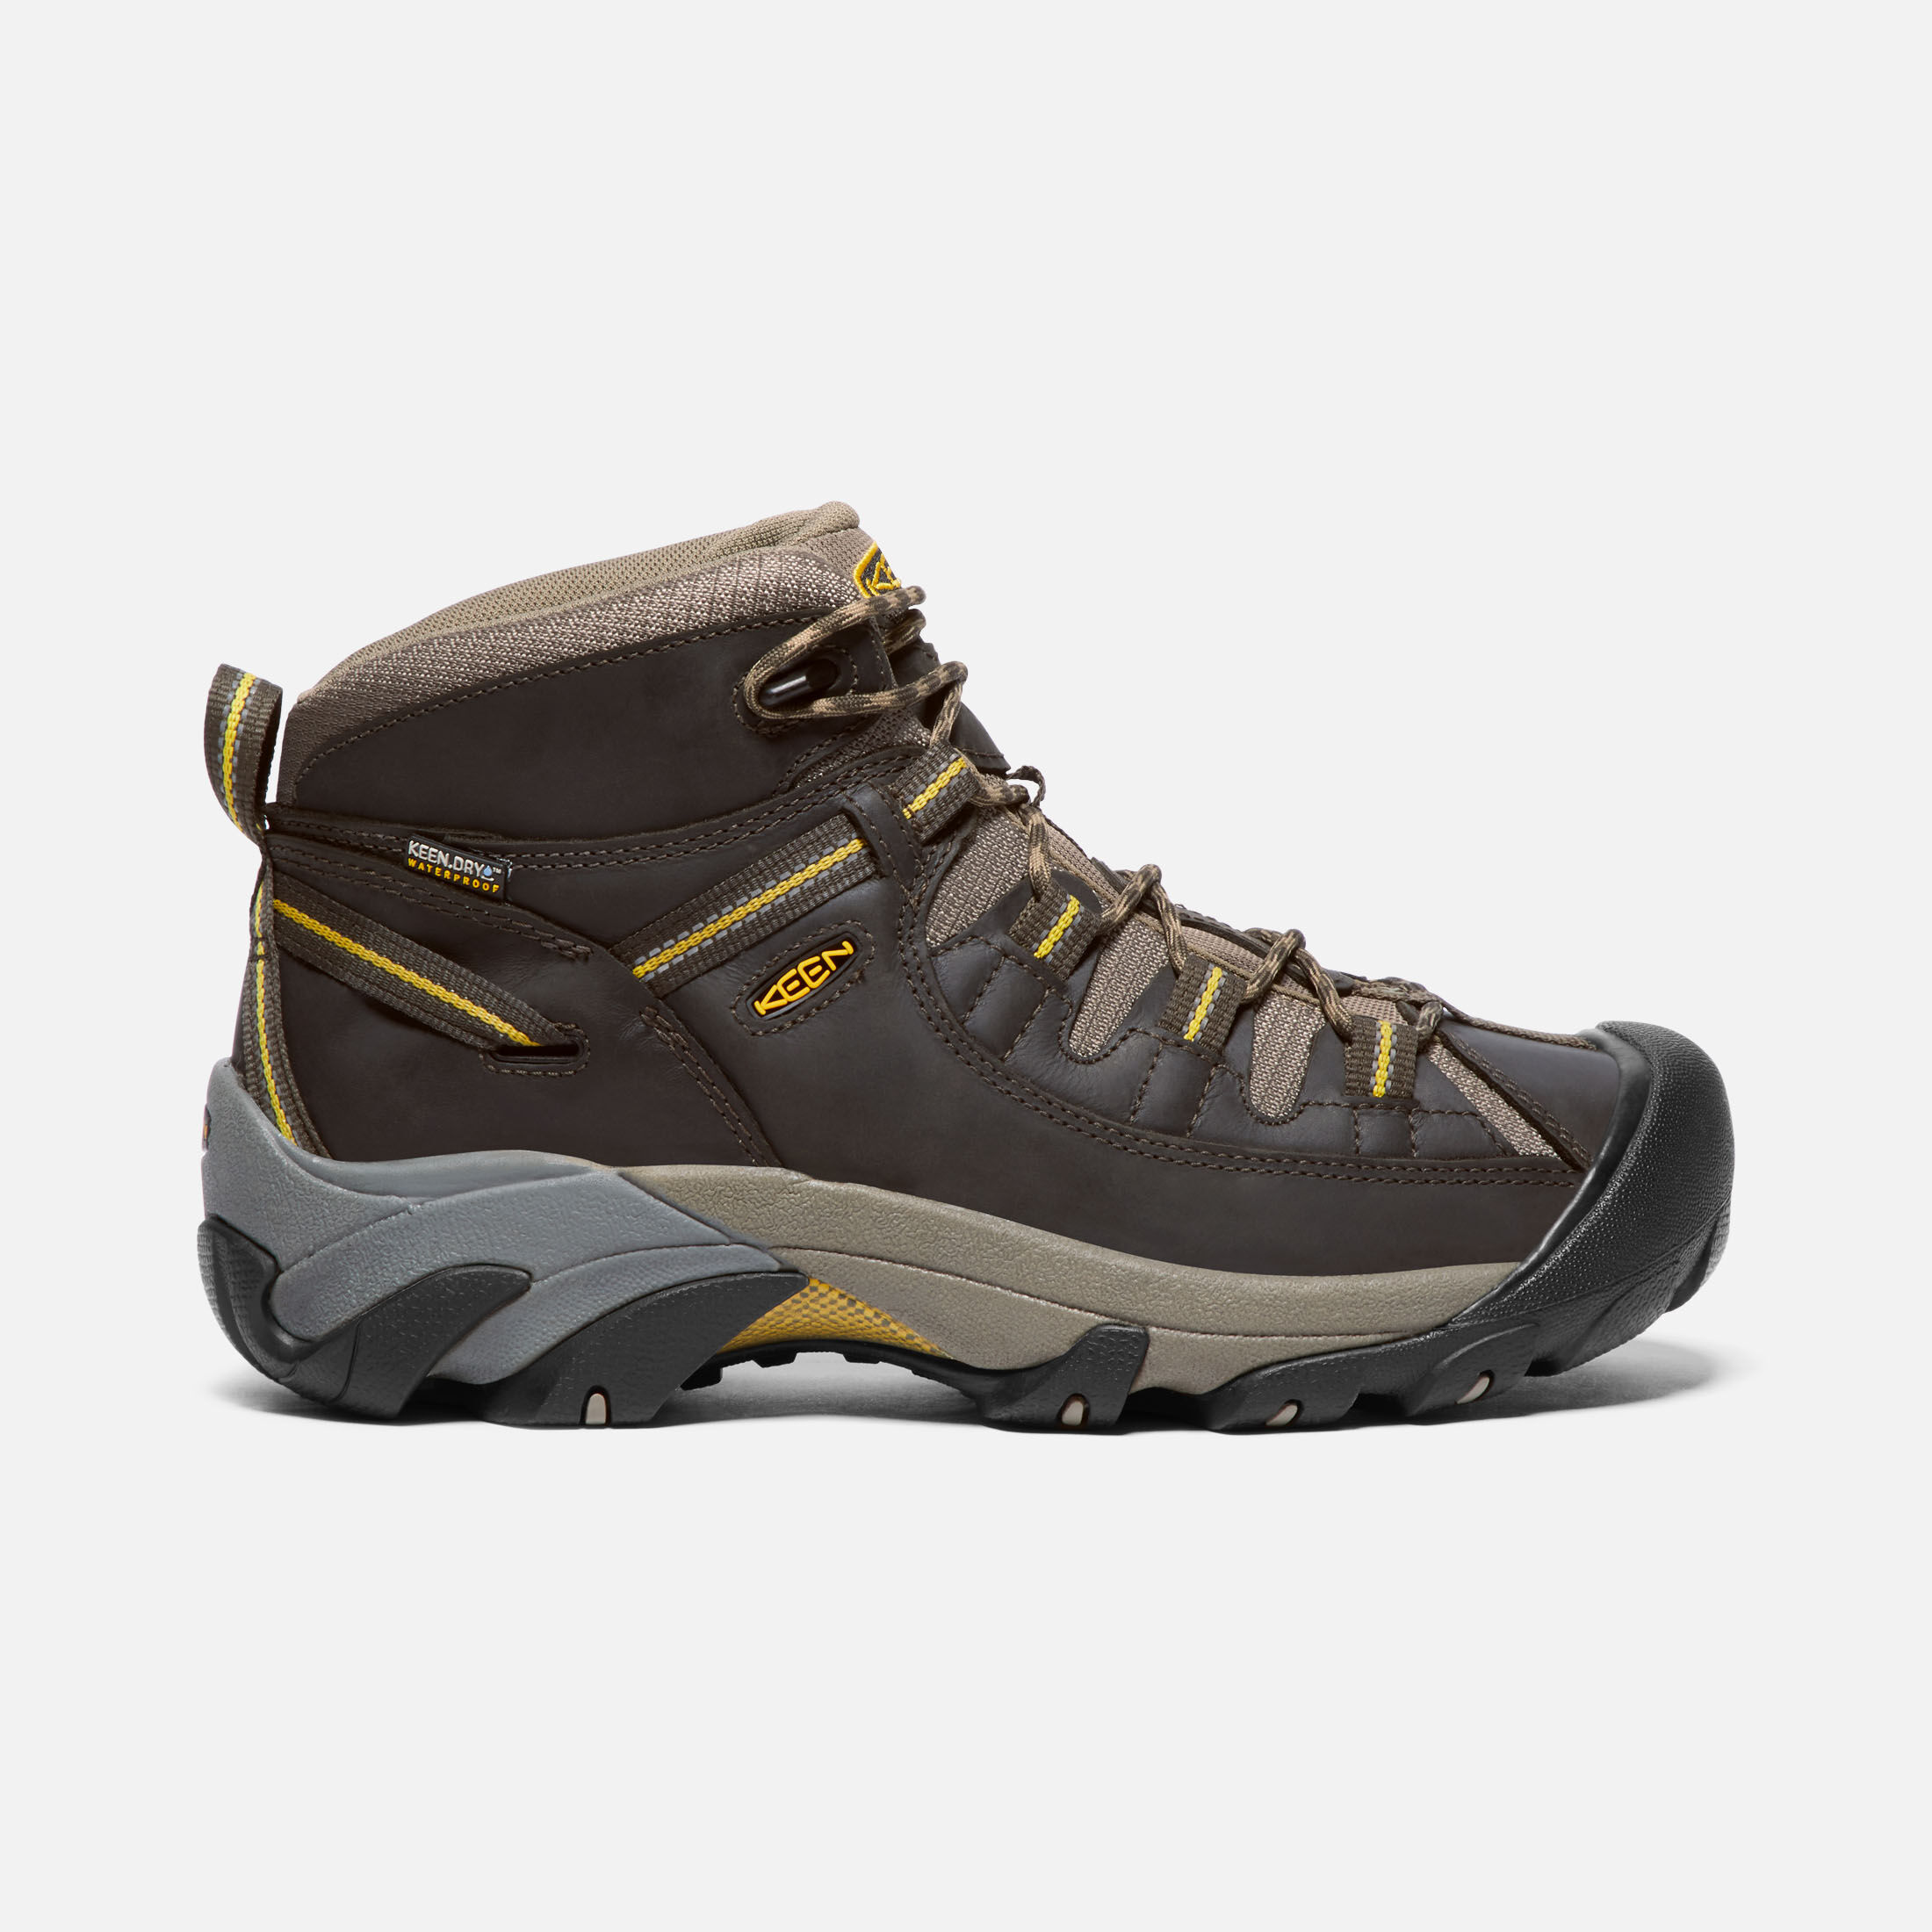 Men's Hiking Boots Leather Waterproof Lightweight Outdoor Shoes Yellow Brown Black